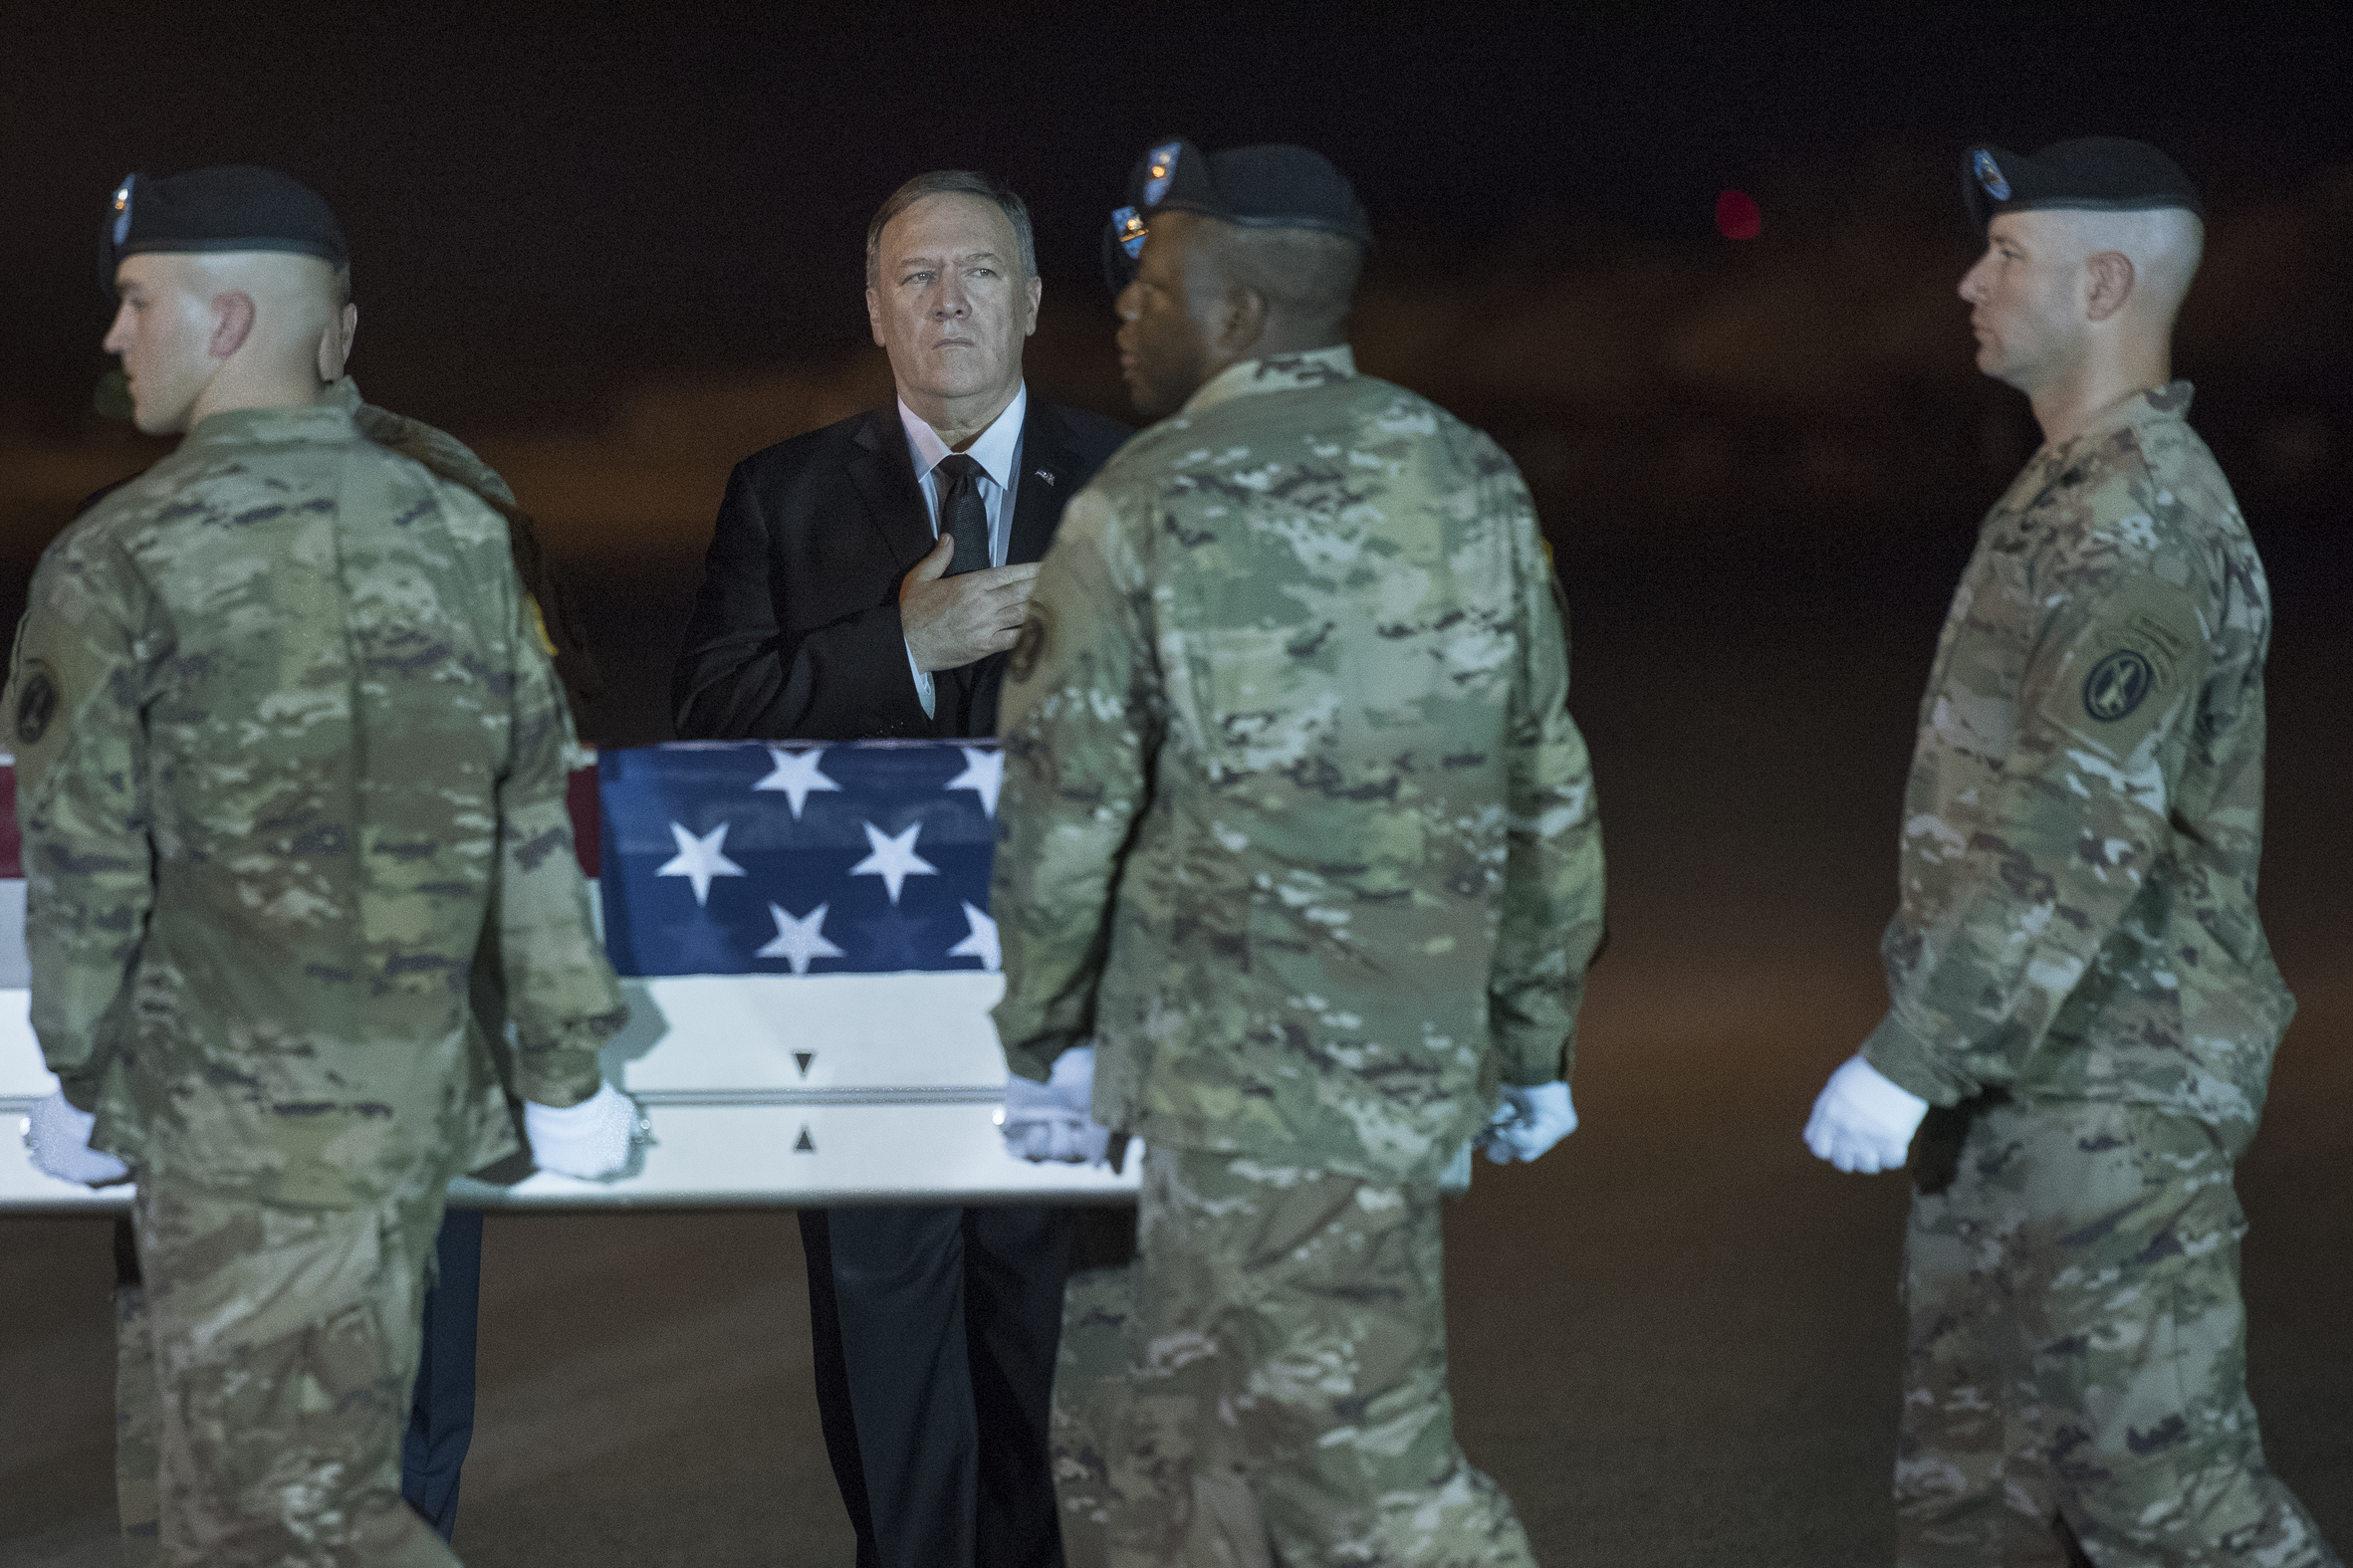 Pompeo: Taliban overreached in attack that killed American